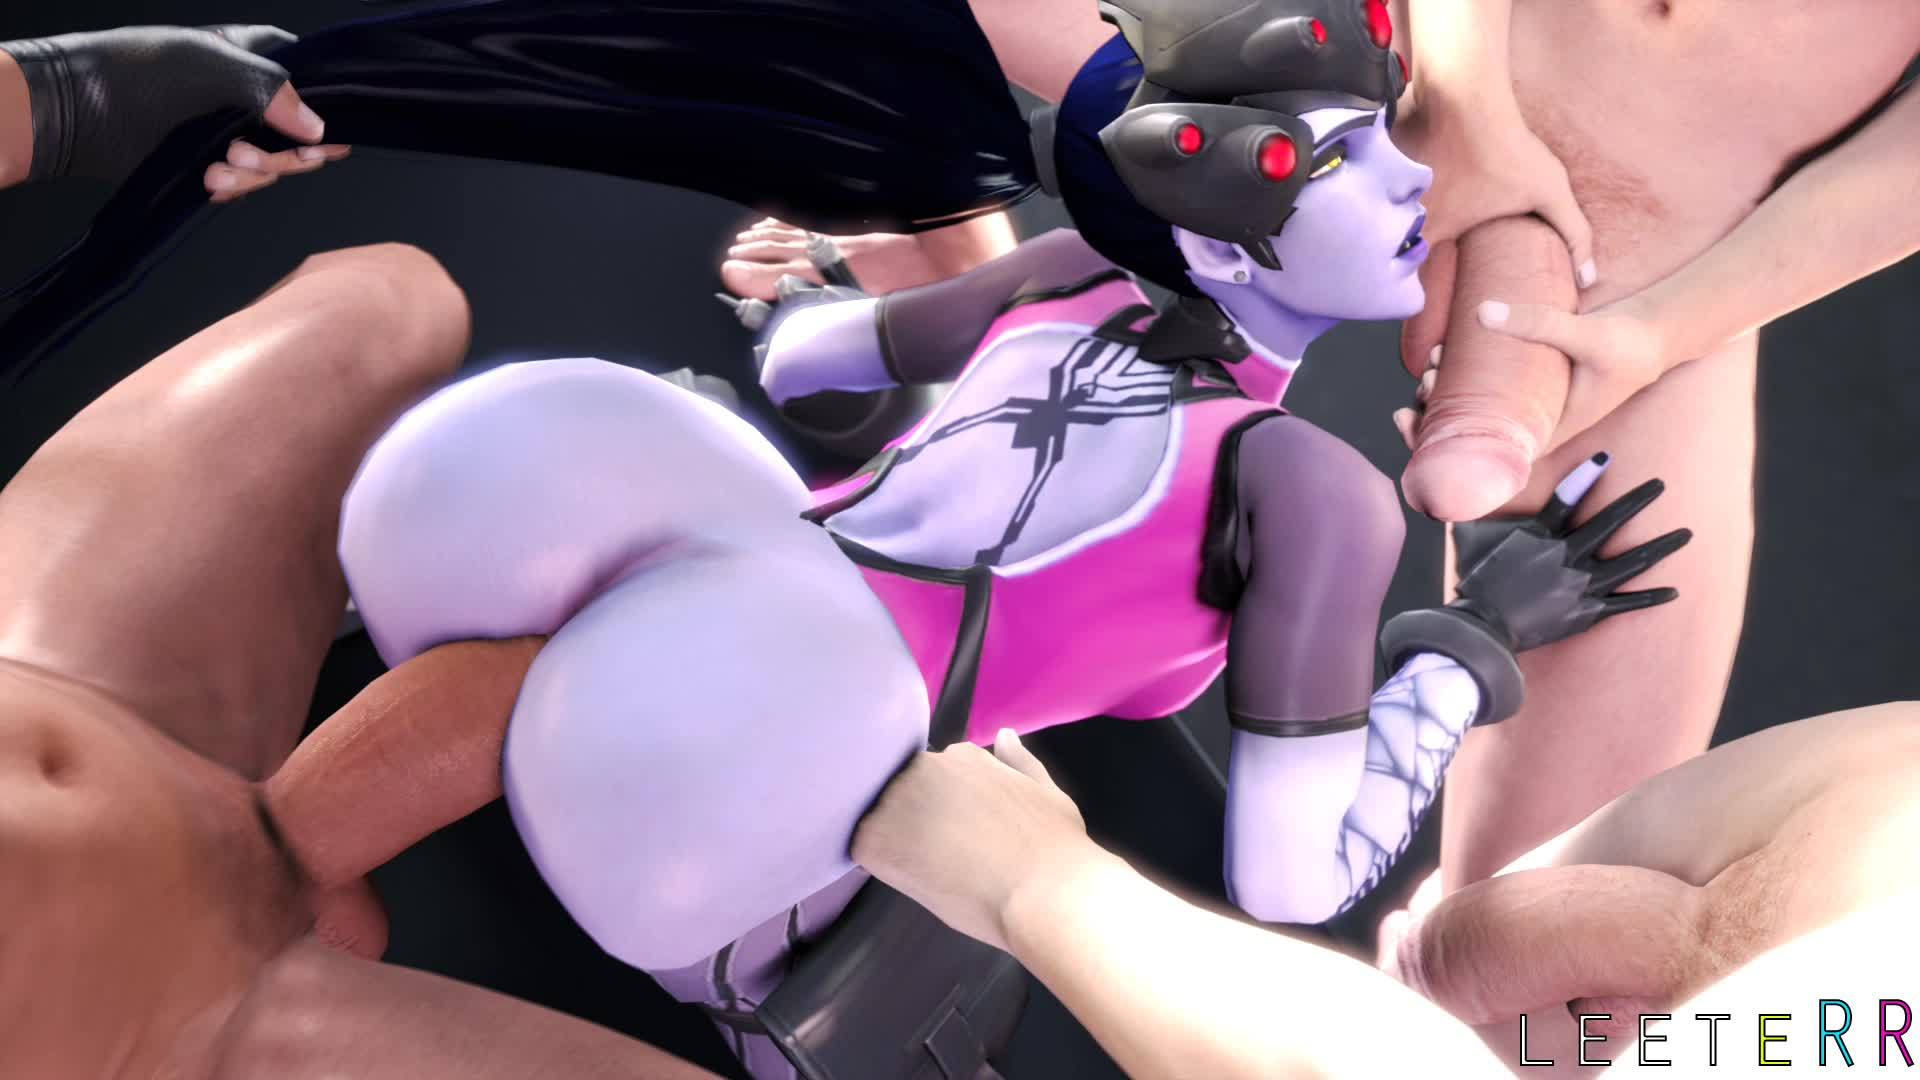 Hentai fatality 3d big ass smut clips